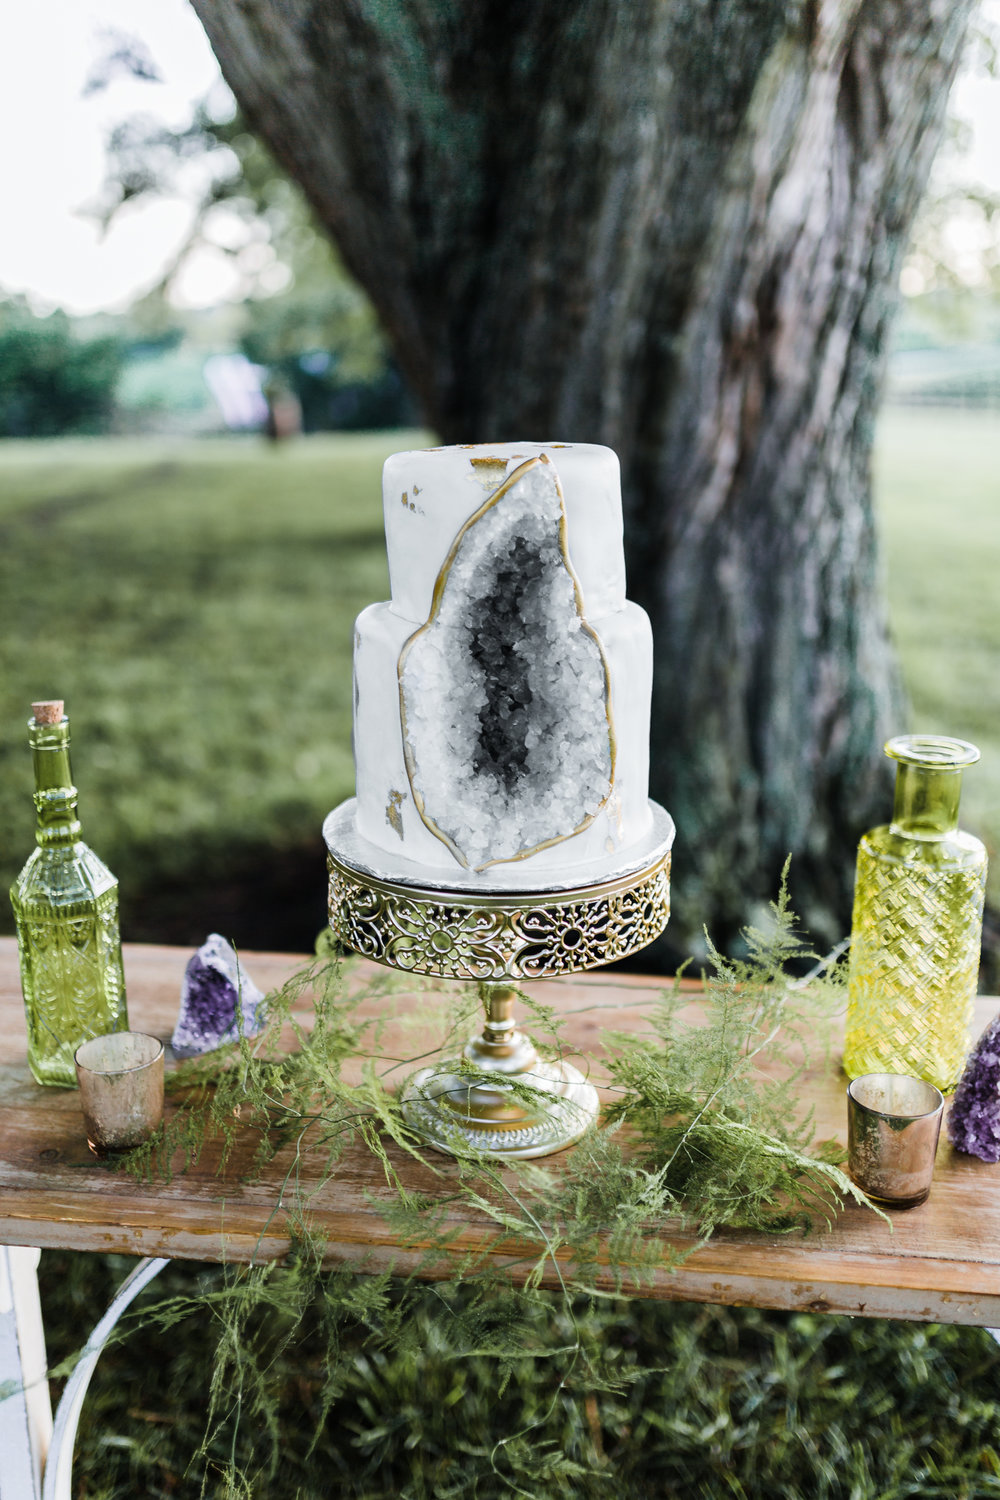 agate and gold boho wedding - geode cake - Once Upon A Crumb Bakery - amethyst wedding details